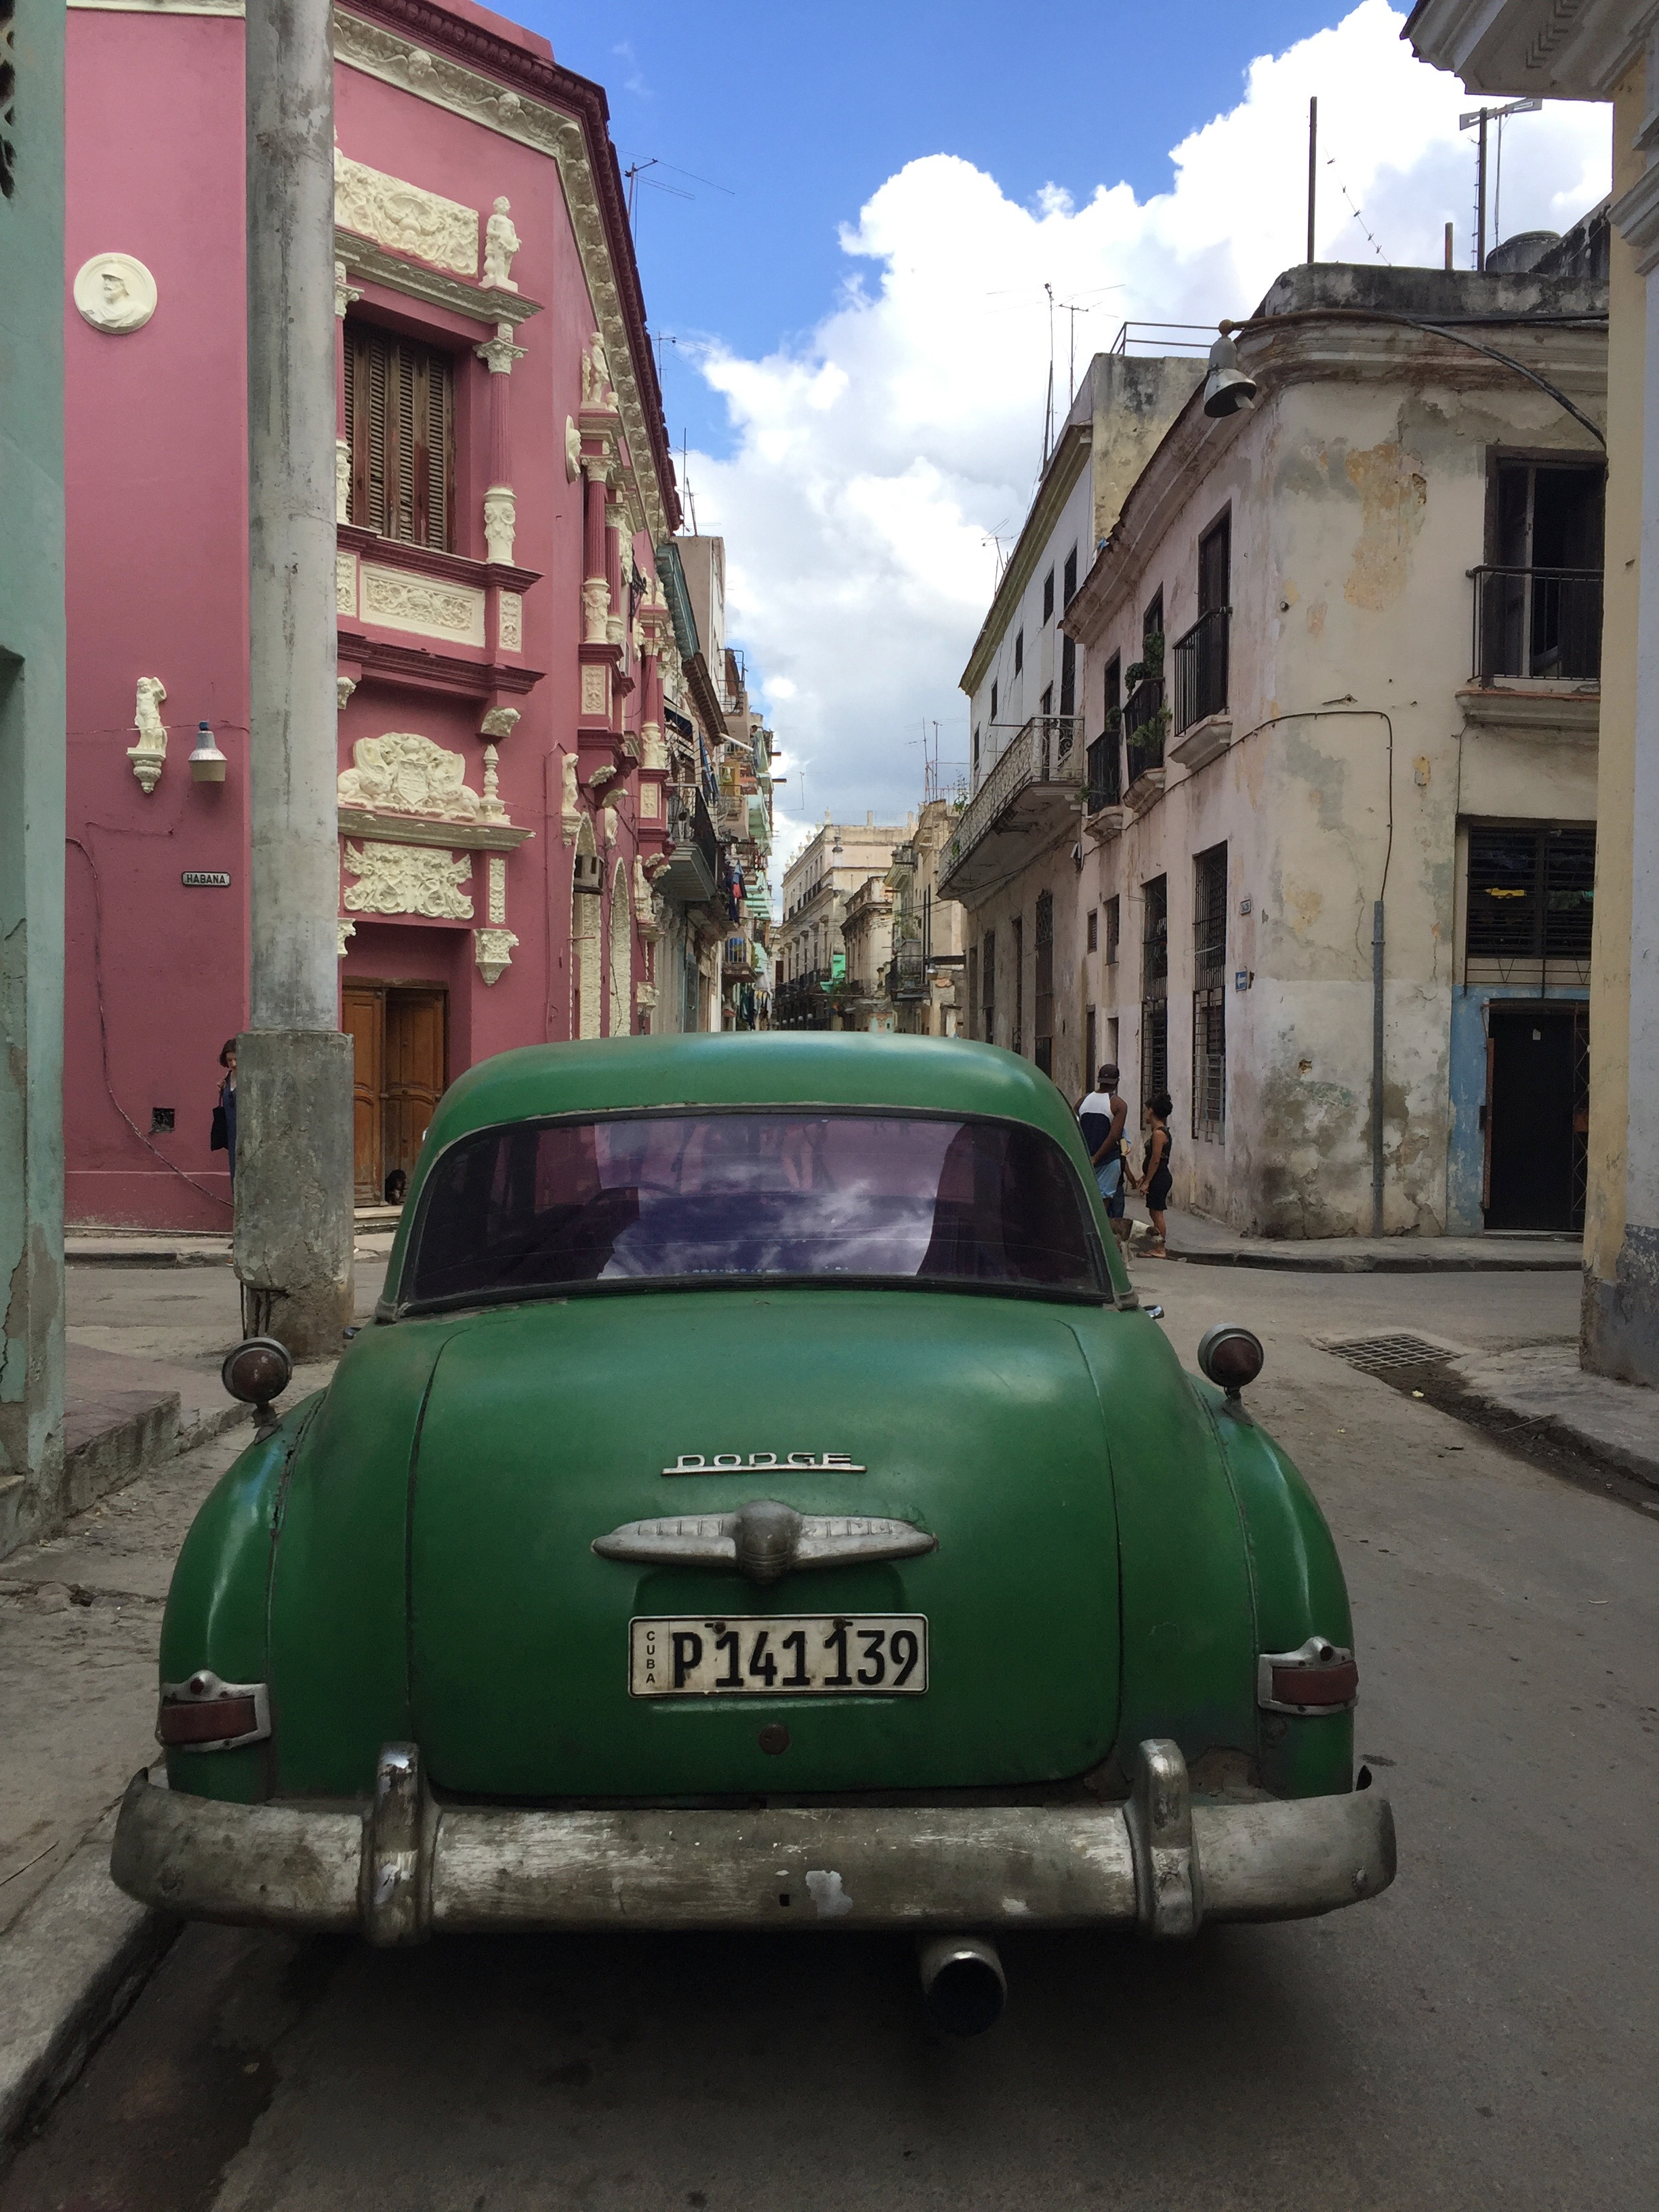 Meanwhile, it's hard to take a bad photograph in Havana.